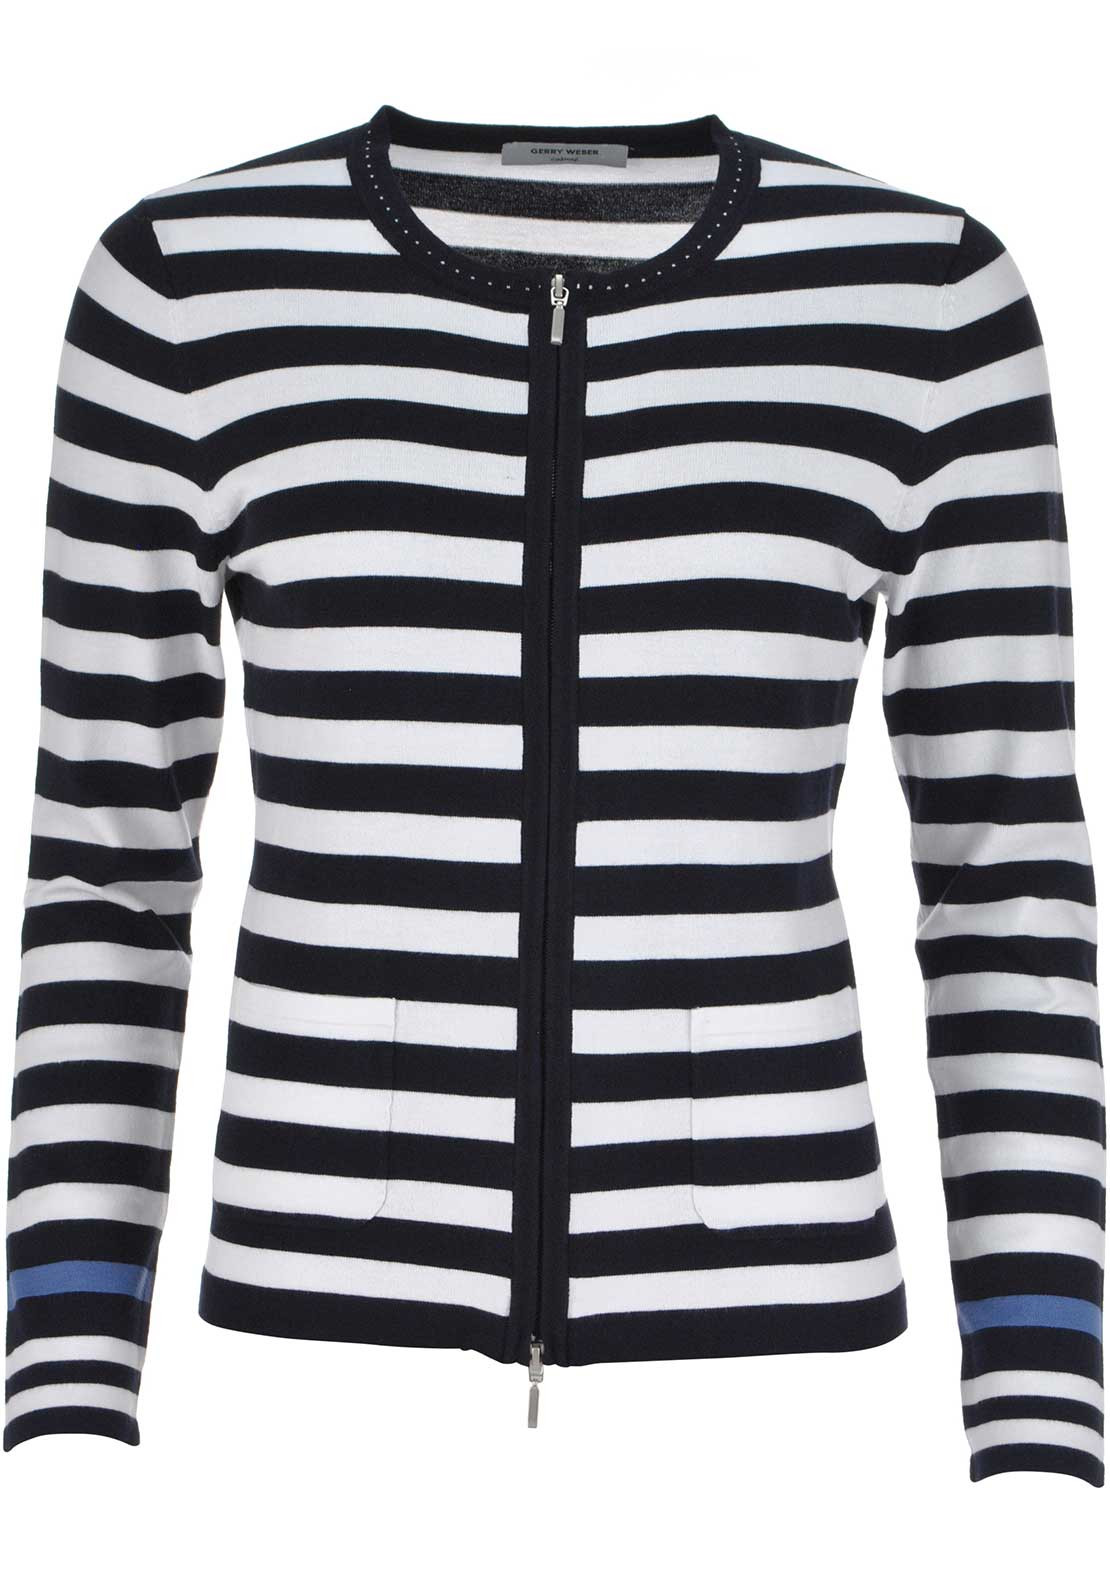 Gerry Weber Striped Print Zip Front Fine Knit Cardigan, Navy and White